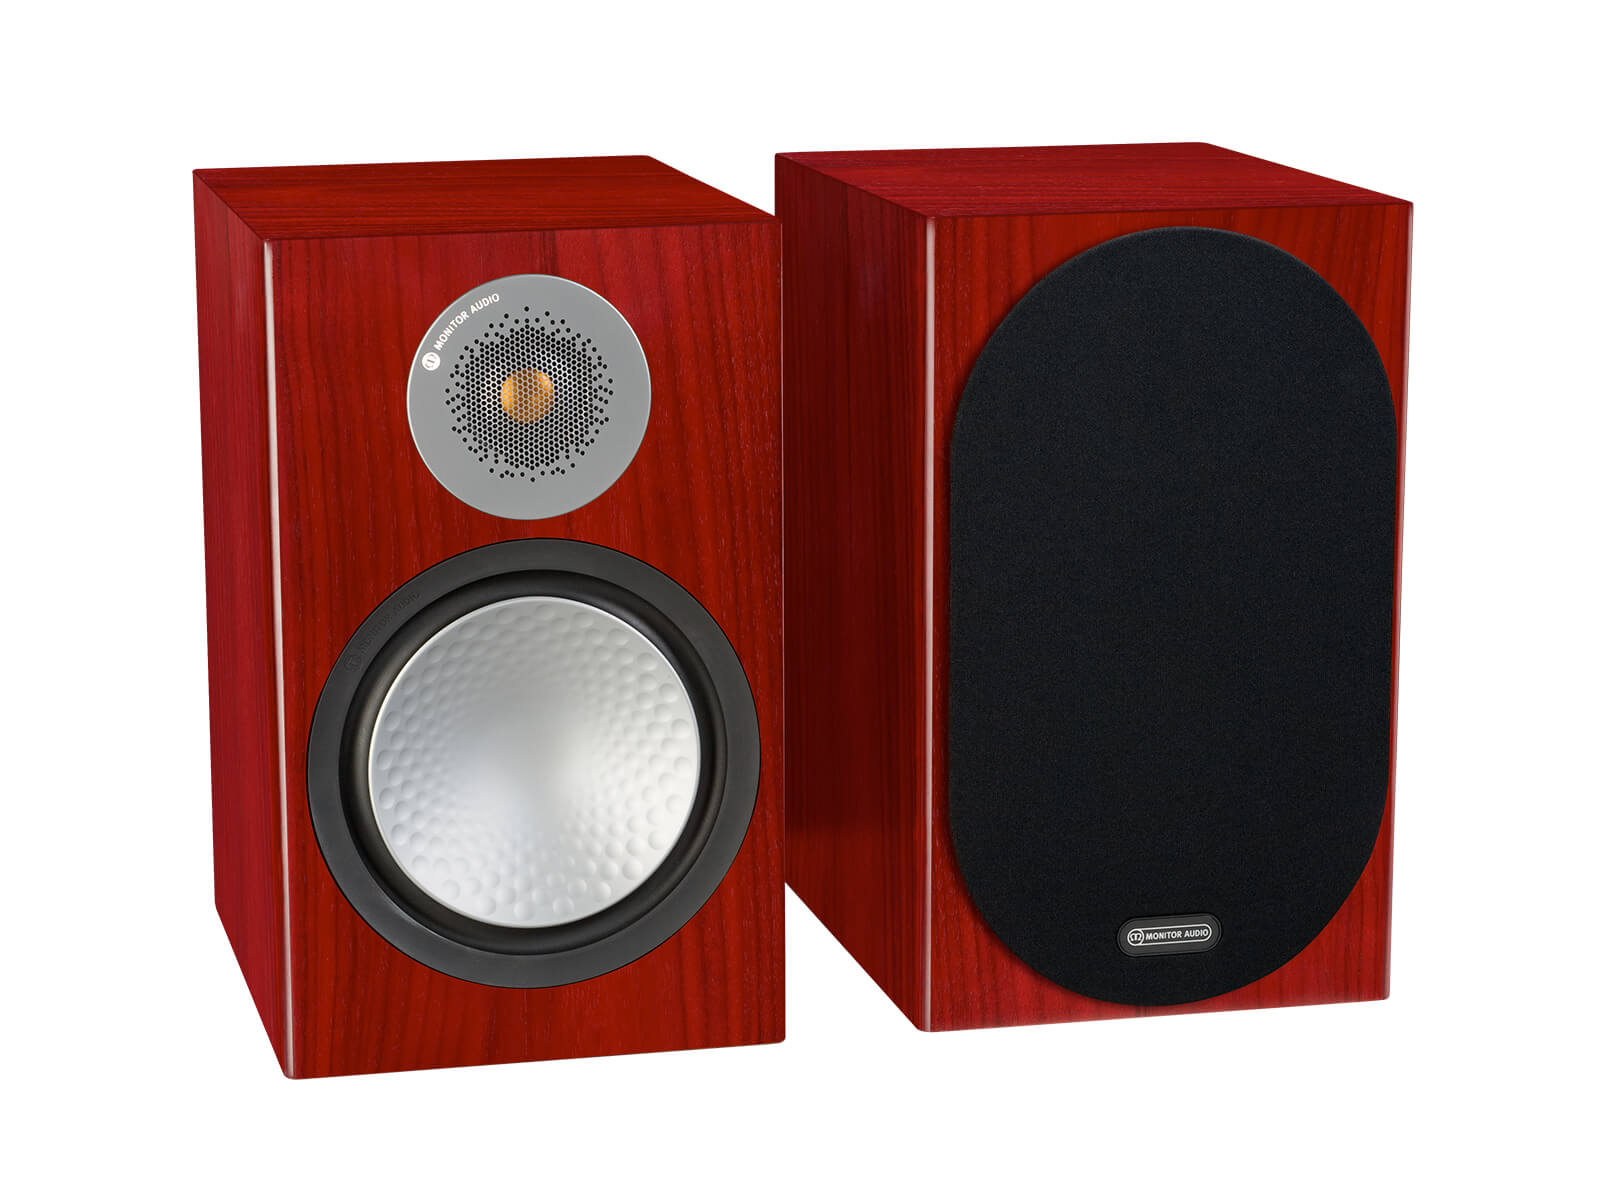 Silver 100, bookshelf speakers, with and without grille in a rosenut finish.